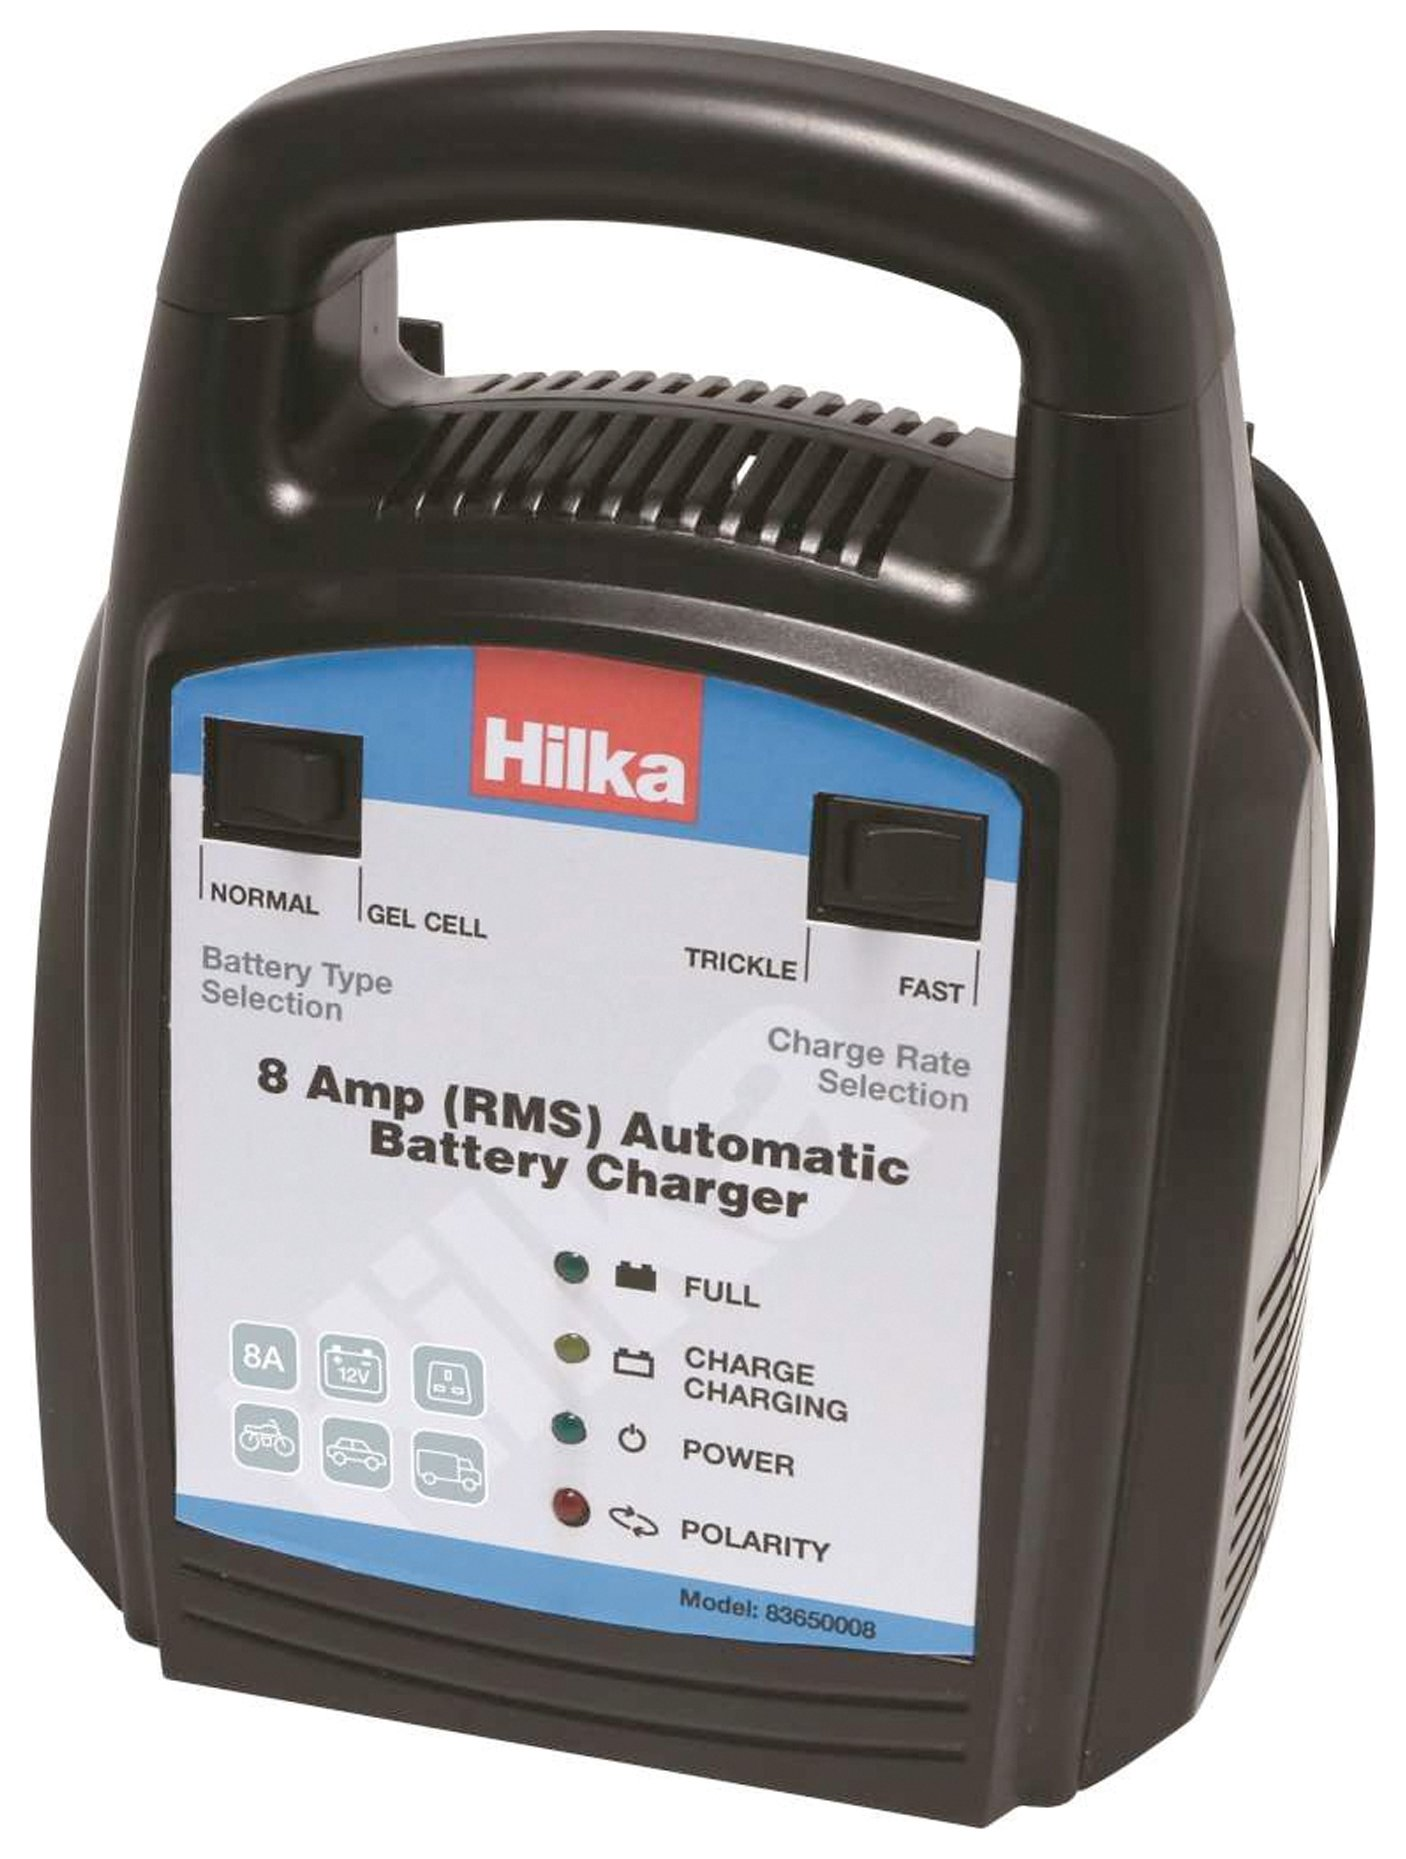 hilka 8 amp automatic battery charger. Black Bedroom Furniture Sets. Home Design Ideas